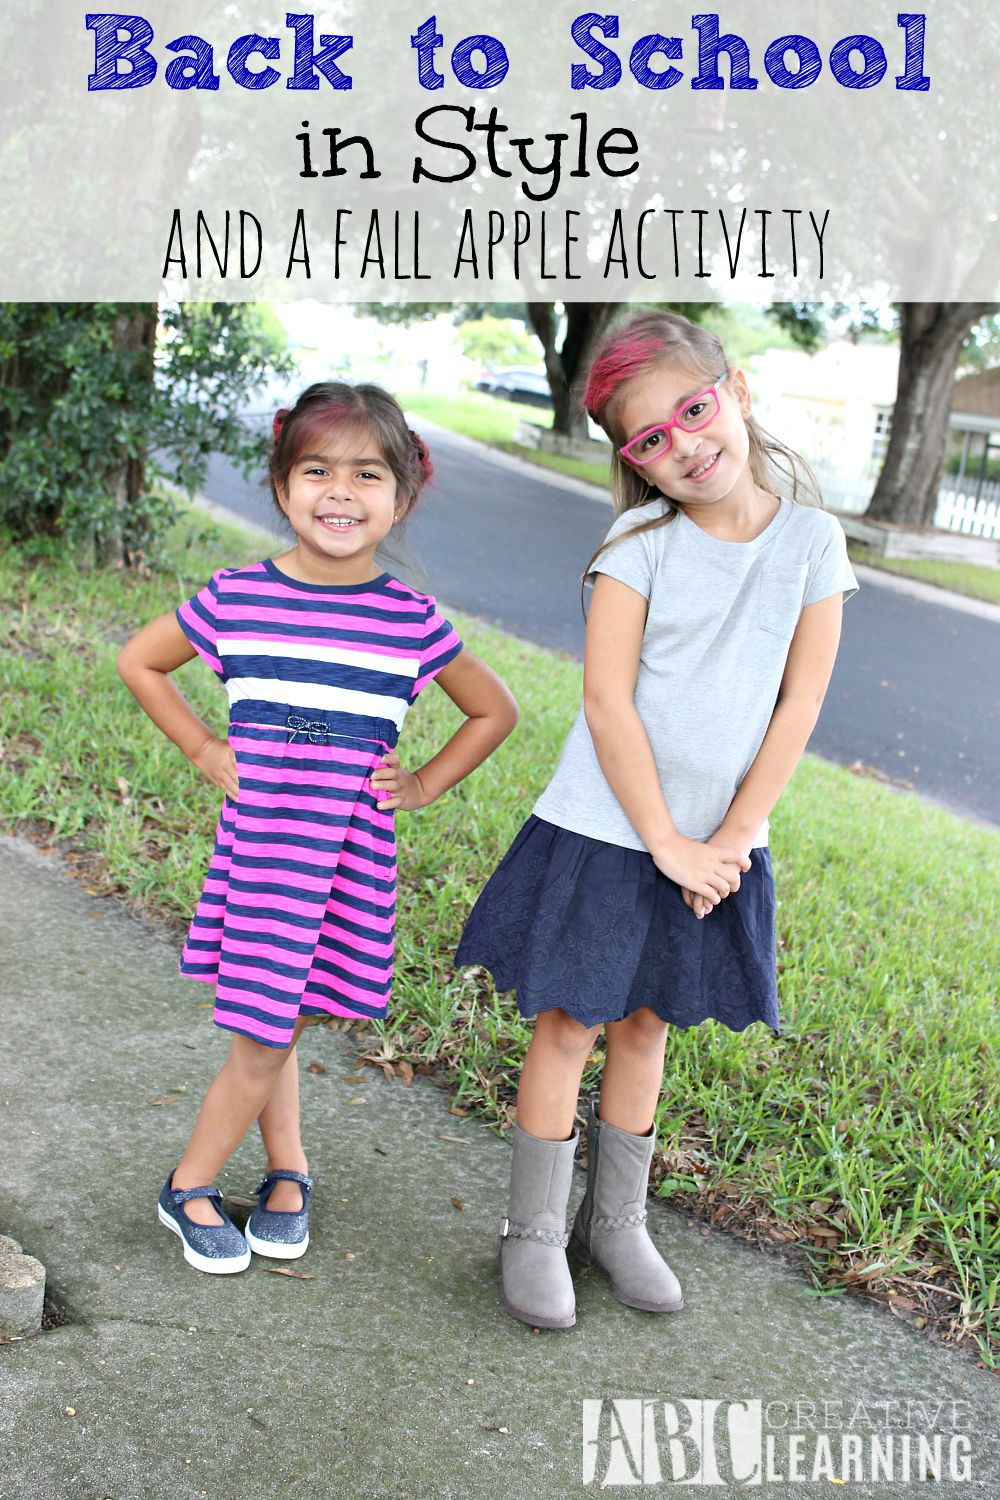 Back to School in Style and a Fall Apple Activity